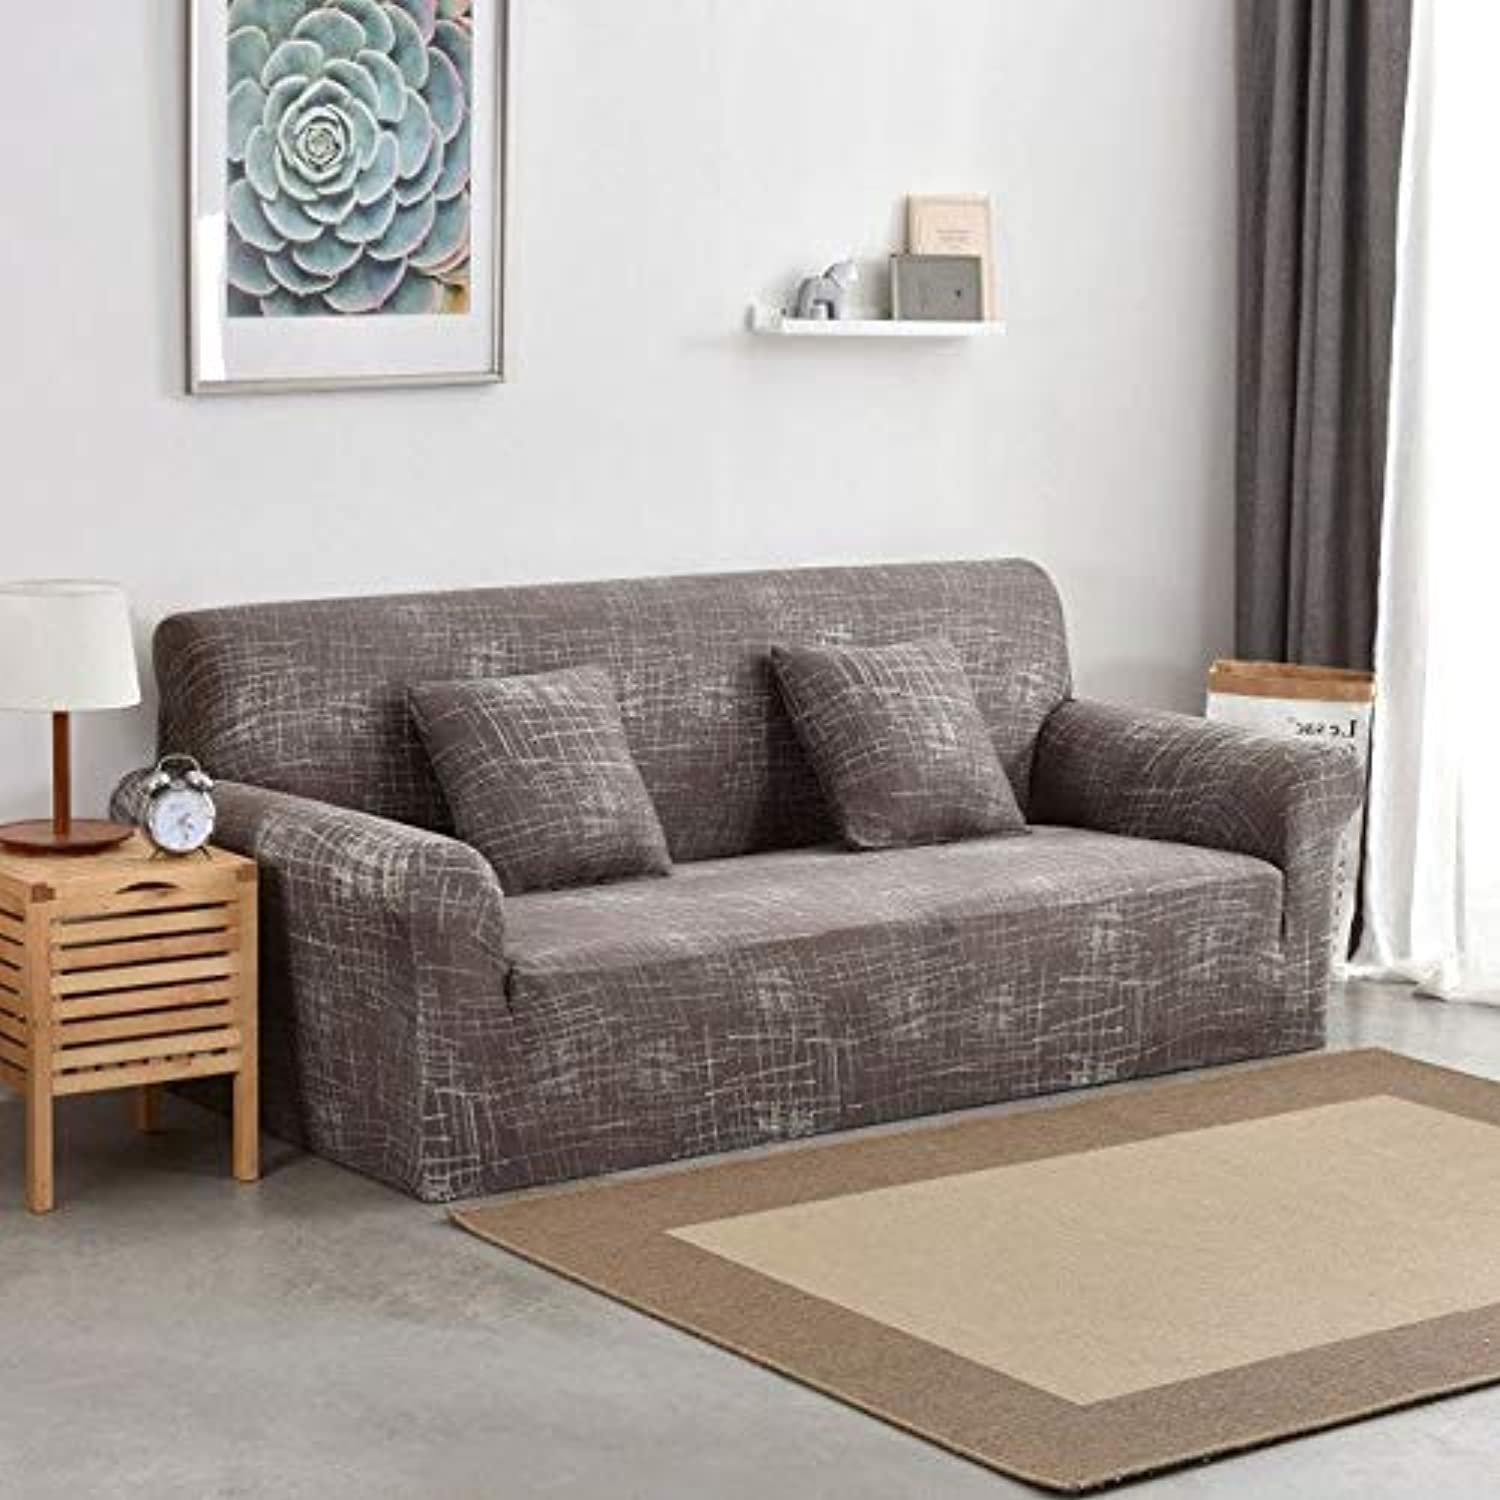 Elastic Stretch Sofa Covers Slipcovers L Shaped Sofa Cover Stretch Sectional Couch Cover Sofa Set Sofa Covers for Living Room   color 9, 3 Seater